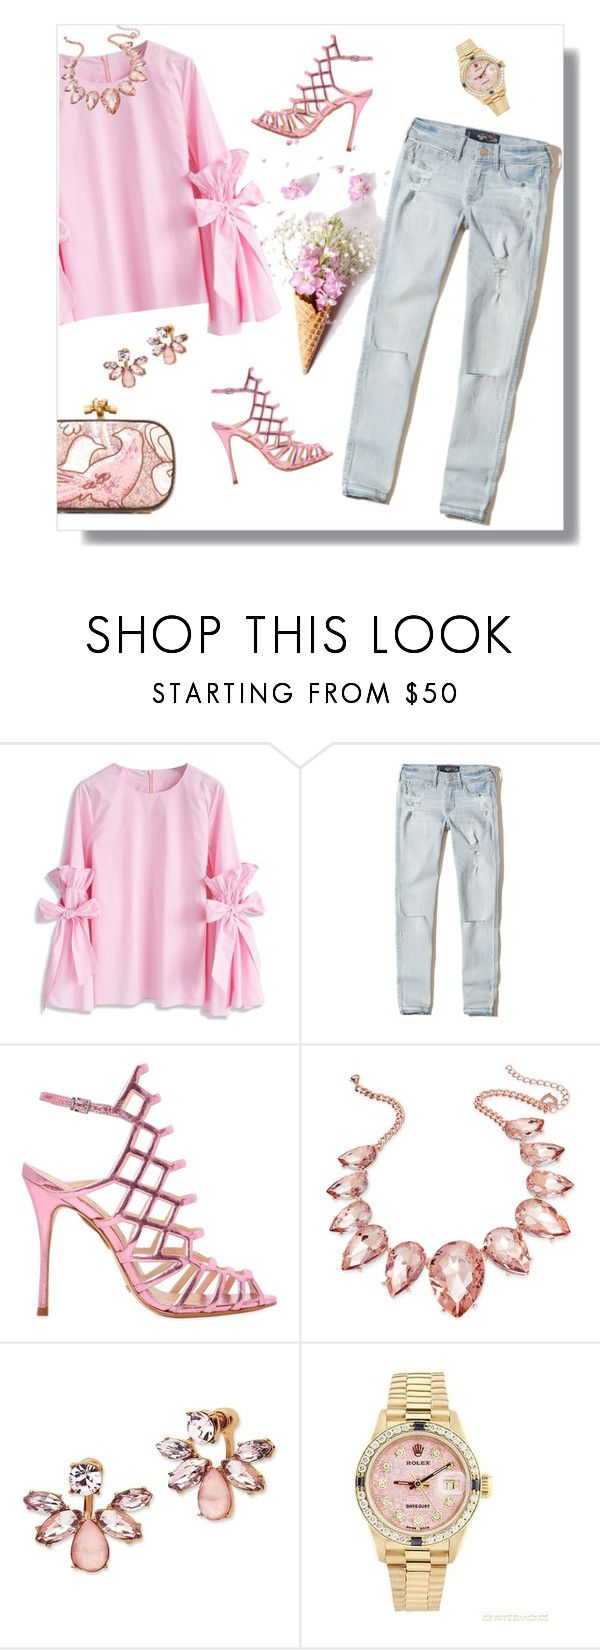 """""""Pink Sparkle Happiness"""" by mk-style ❤ liked on Polyvore featuring Chicwish, Hollister Co., Schutz, Thalia Sodi, Marchesa, Rolex and Bottega Veneta"""